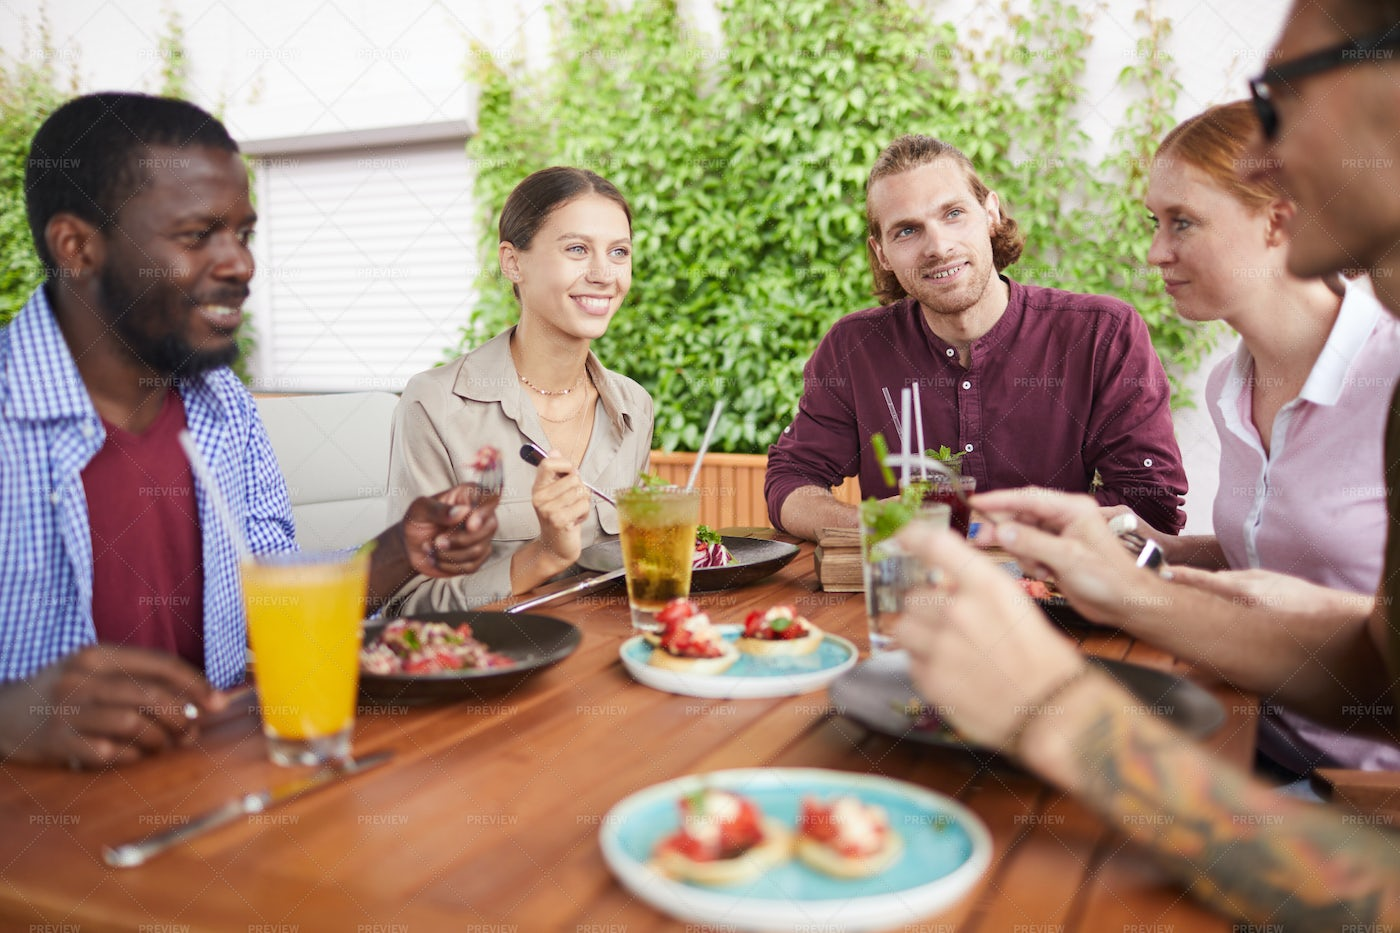 Friends Enjoying Lunch In Cafe: Stock Photos